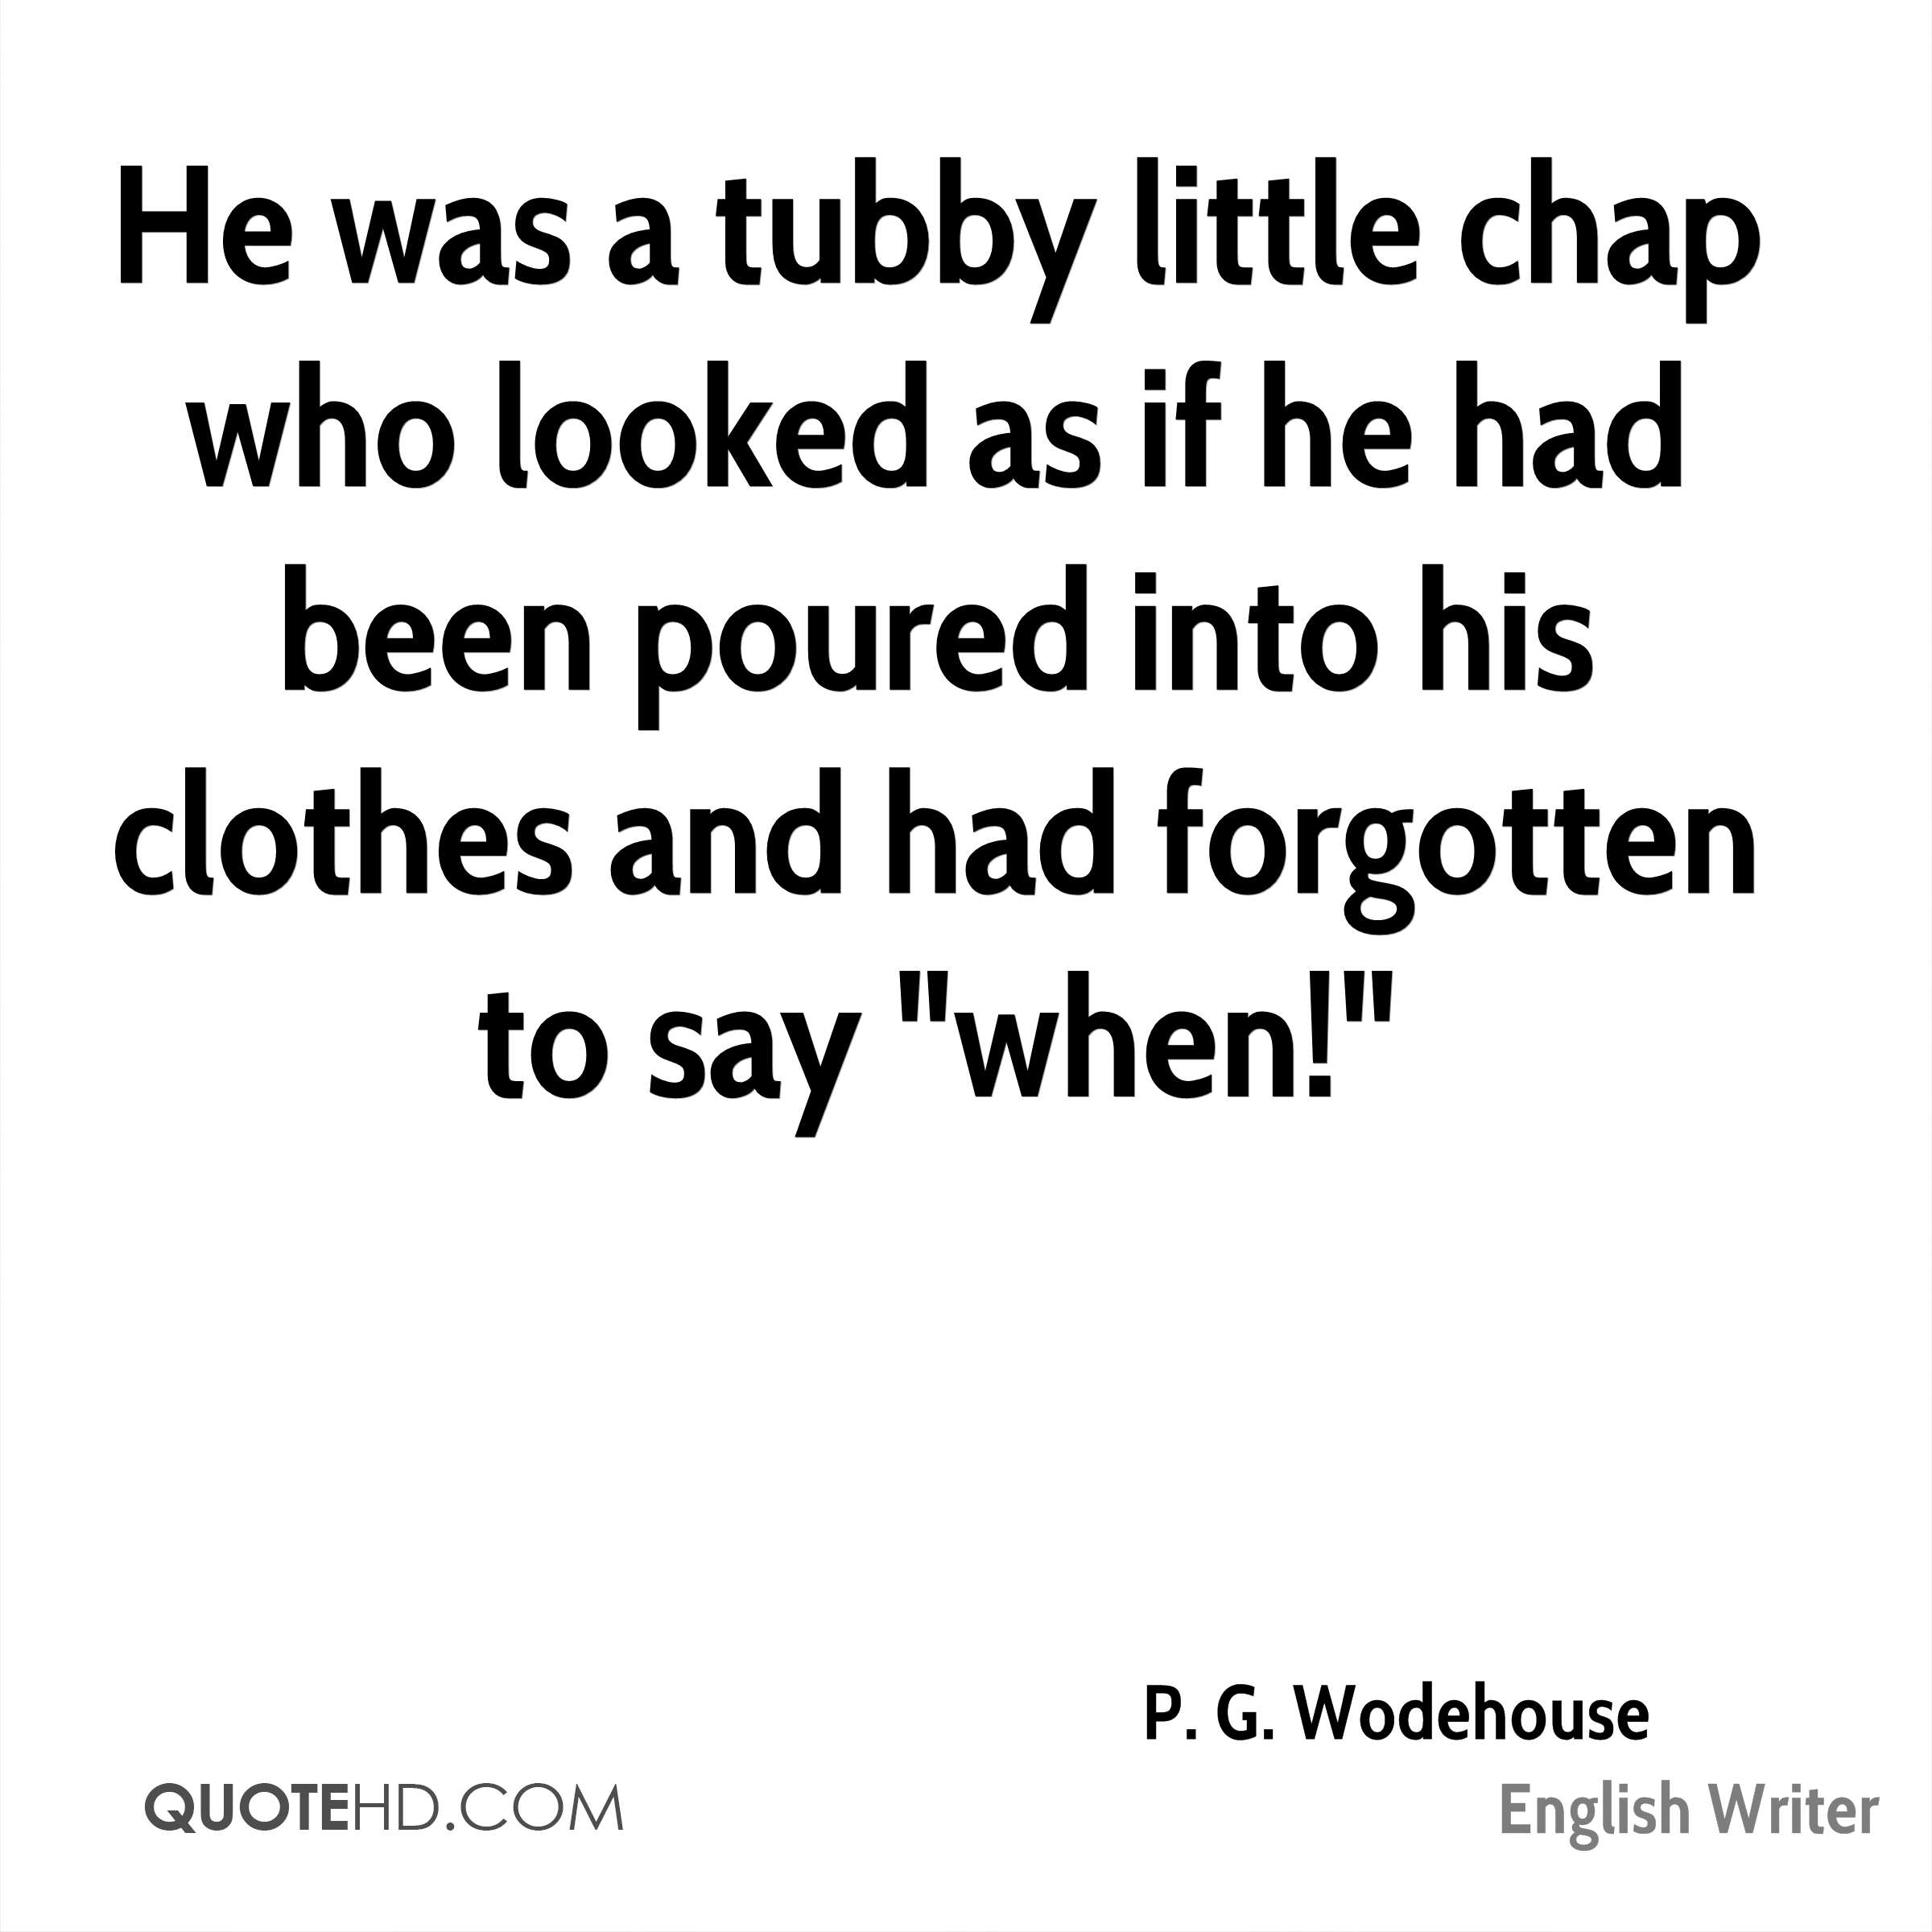 """He was a tubby little chap who looked as if he had been poured into his clothes and had forgotten to say """"when!"""""""